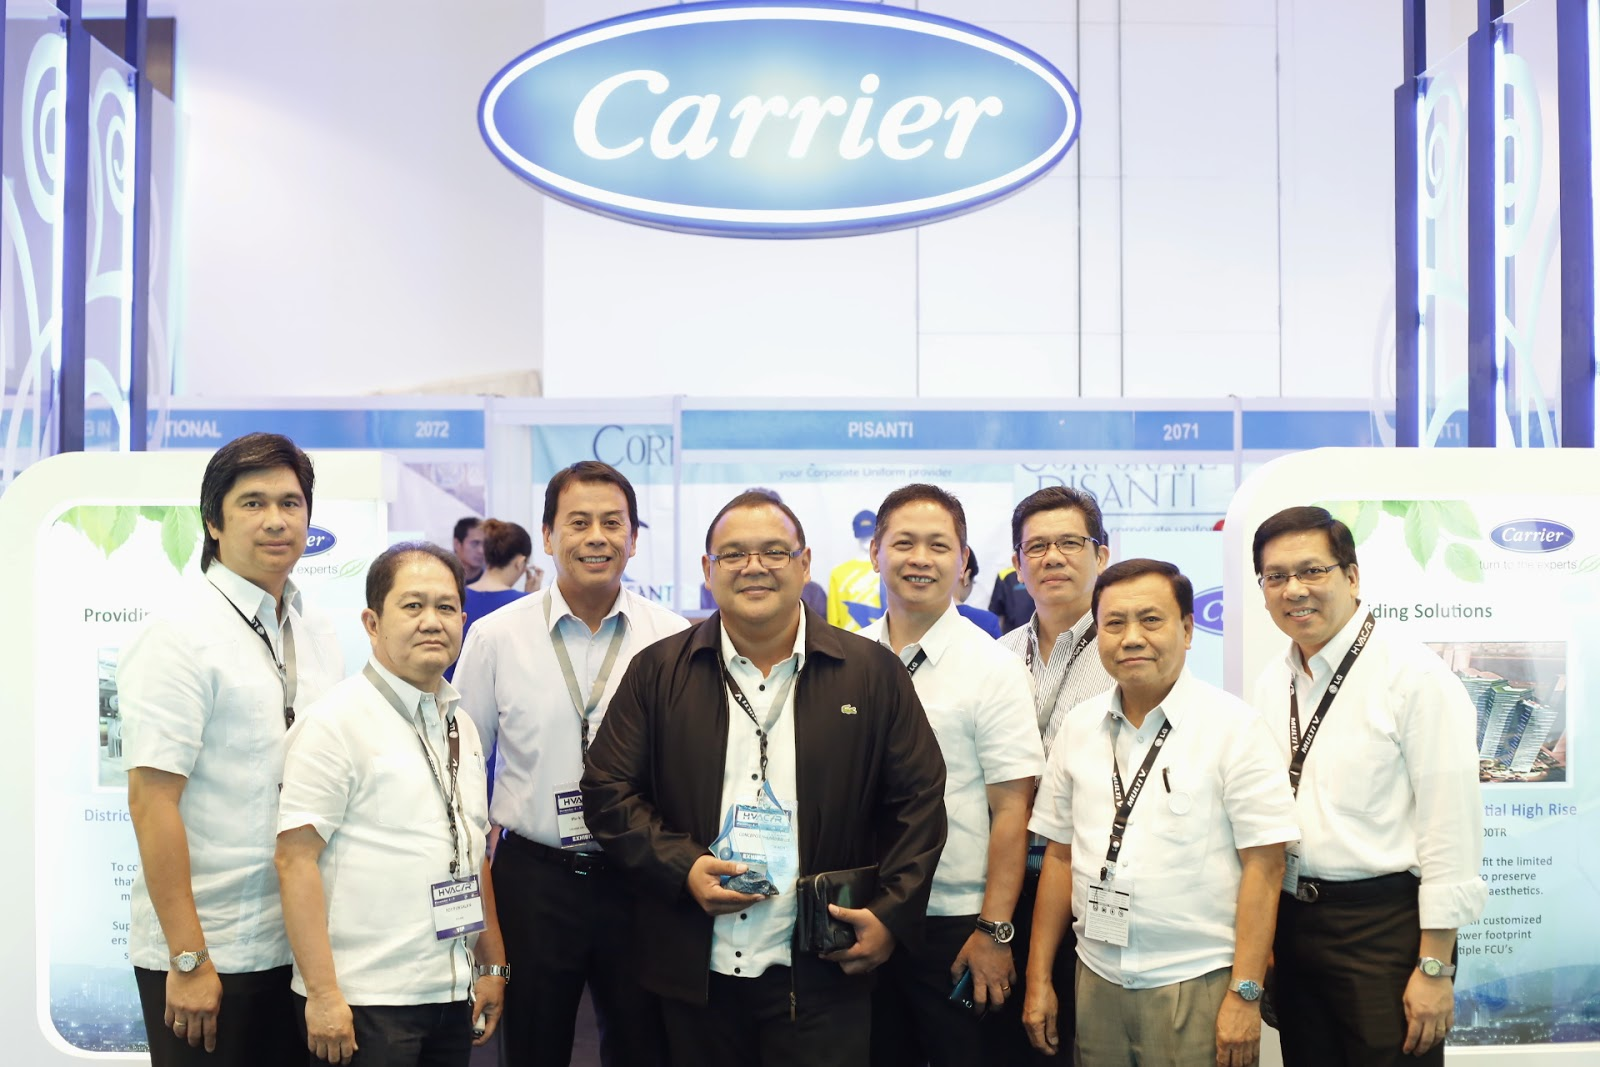 Concepcion-Carrier Continues to Support the HVAC/R PHILIPPINES Expo